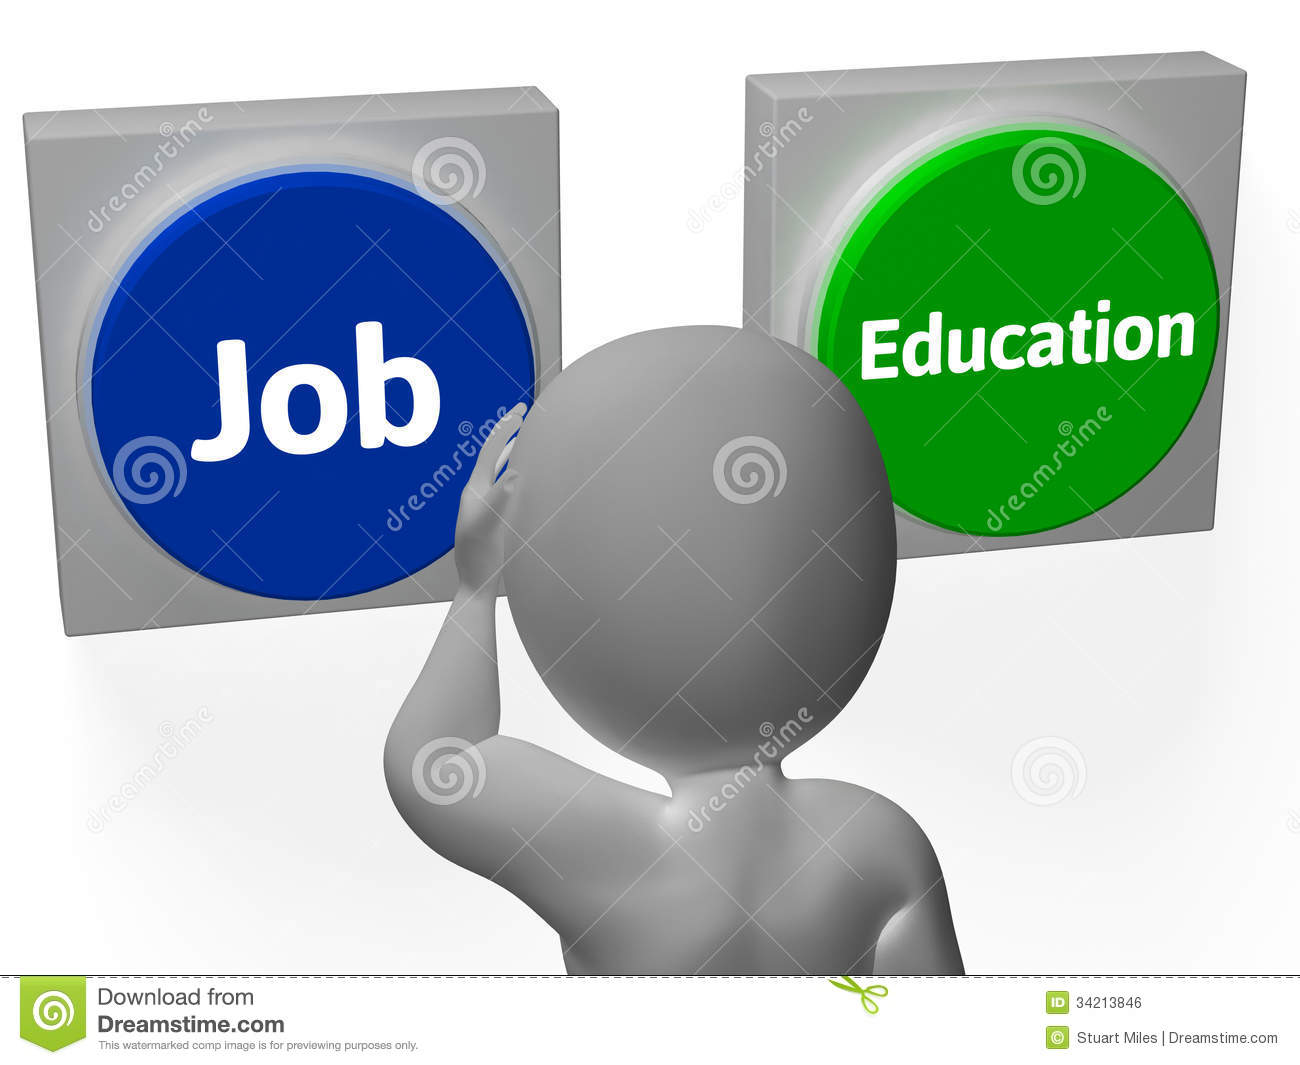 Business/Management Majors and Potential Jobs